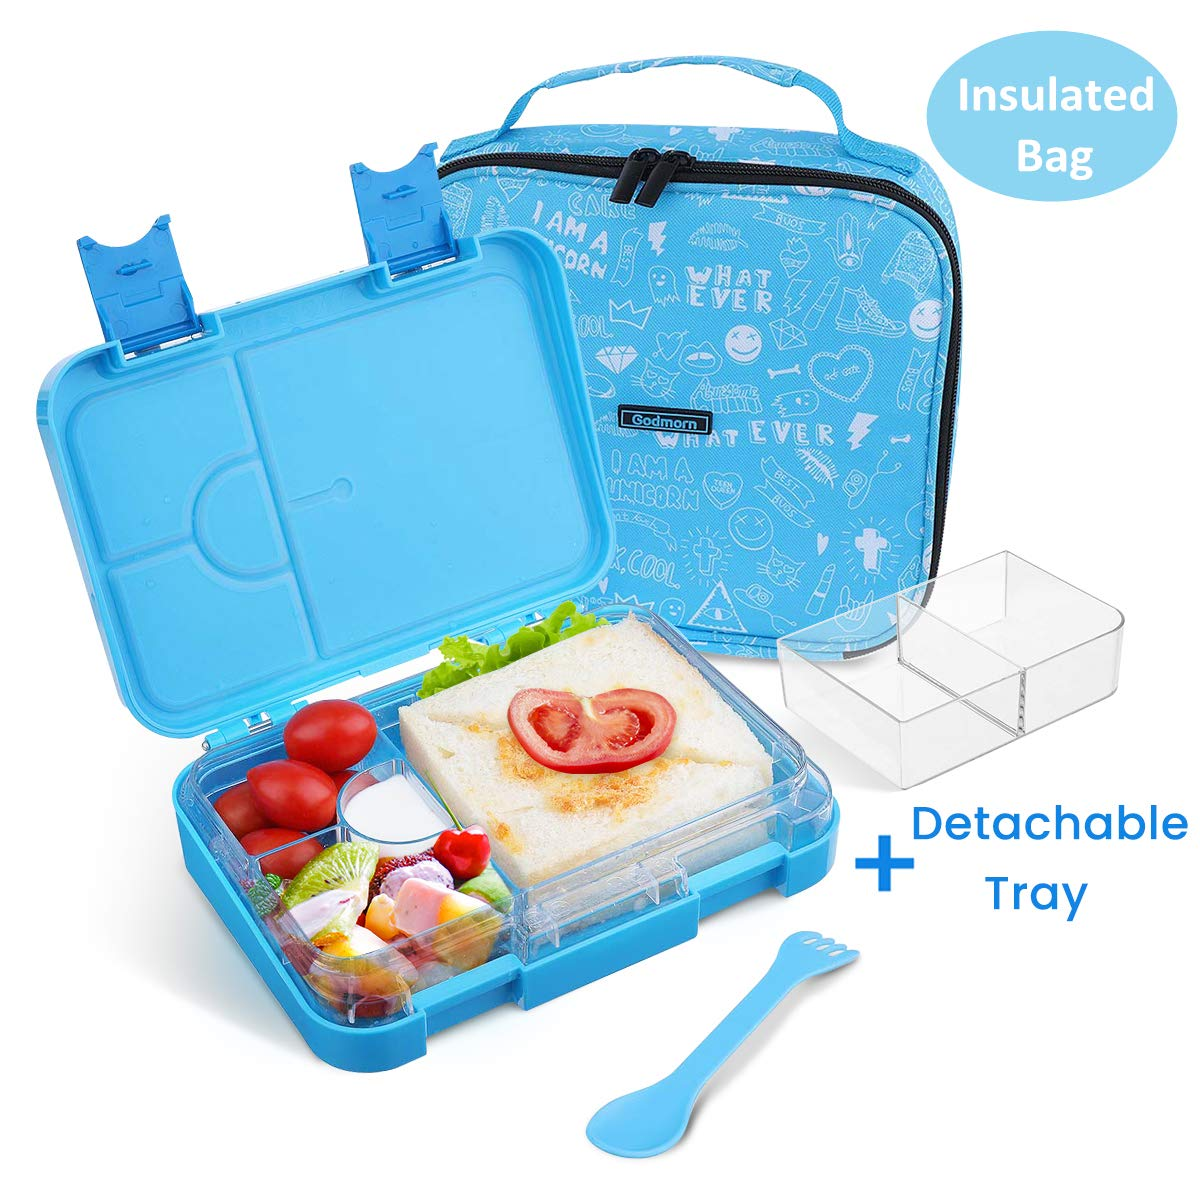 df6754fb87e9 Lunch Boxes for Kids Bento Box | Godmron School Lunch Container for Girls  Boys with Insulated Bag Spoon Fork, Leak-proof, BPA-Free, 4/6 Compartments  ...